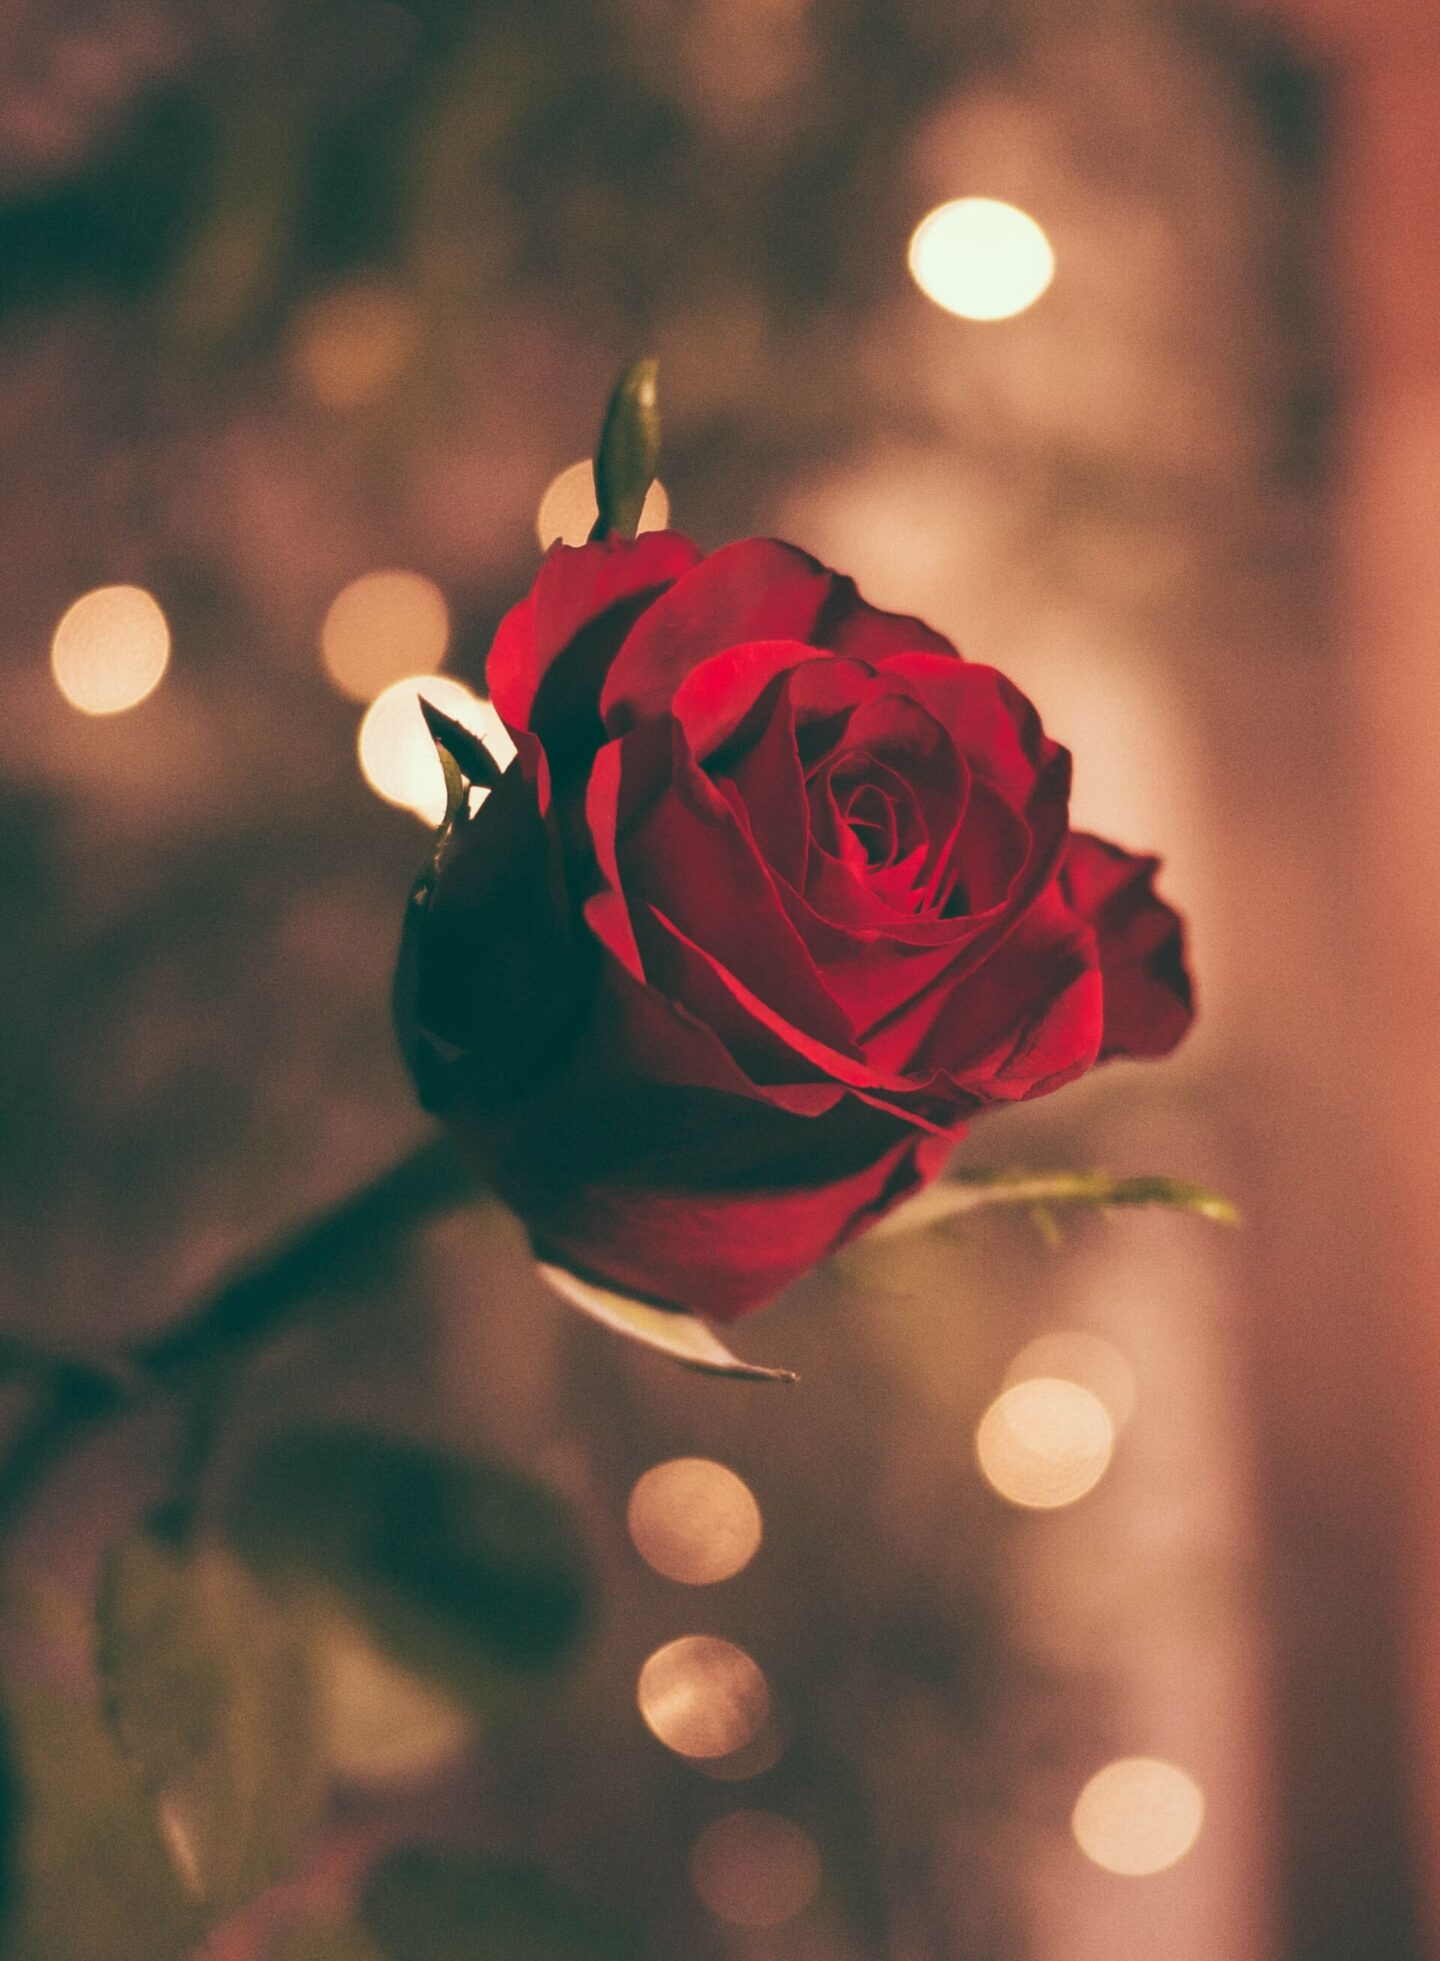 Romantic gifts to make them happy this Valentines day